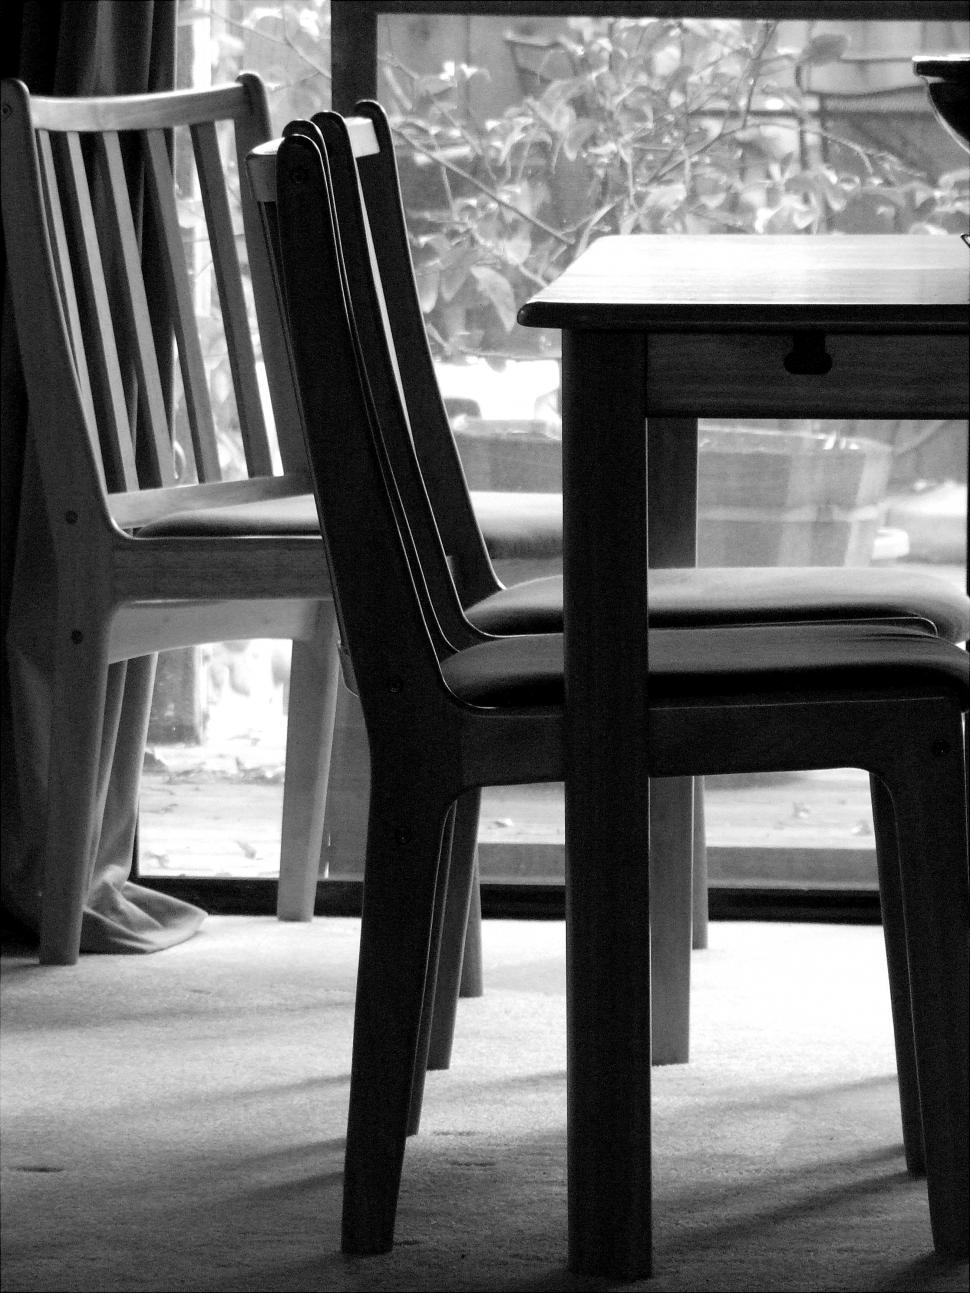 Download Free Stock HD Photo of Chairs Online